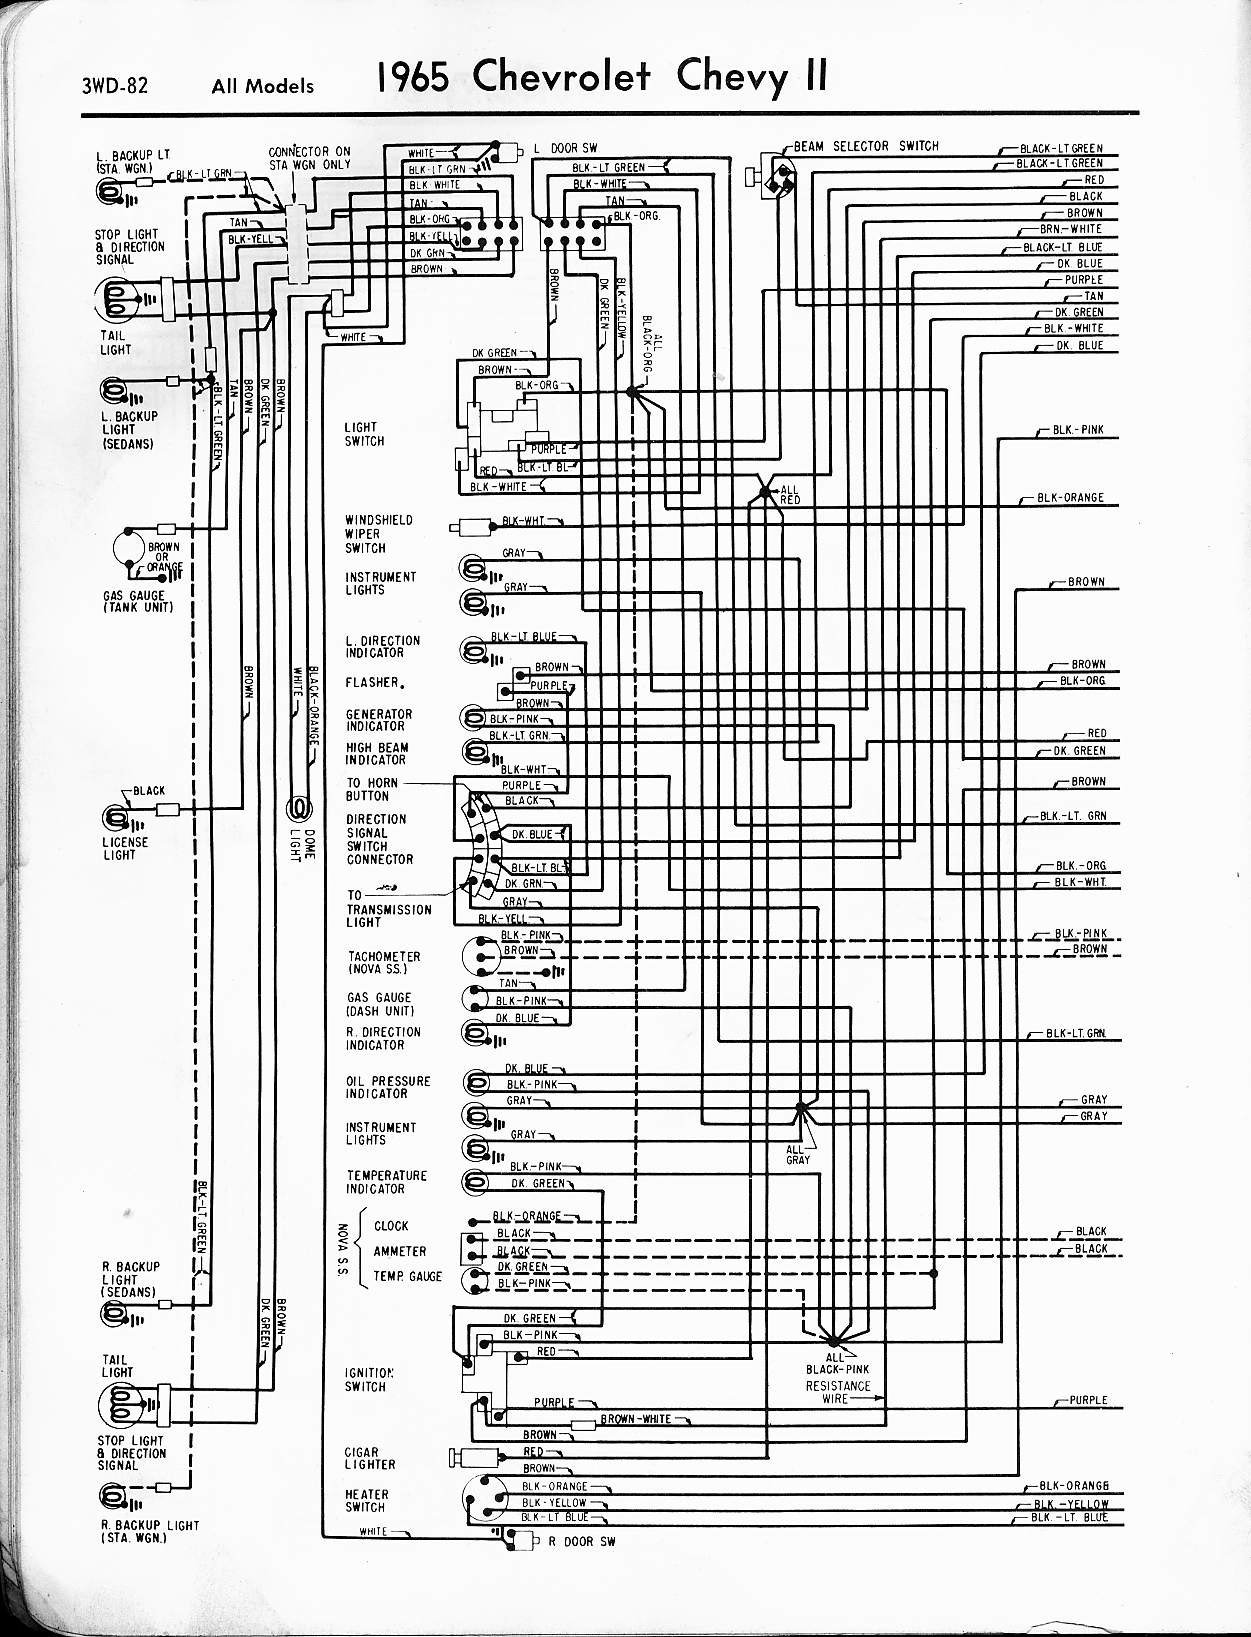 MWireChev65_3WD 082 57 65 chevy wiring diagrams chevy wiring at bayanpartner.co